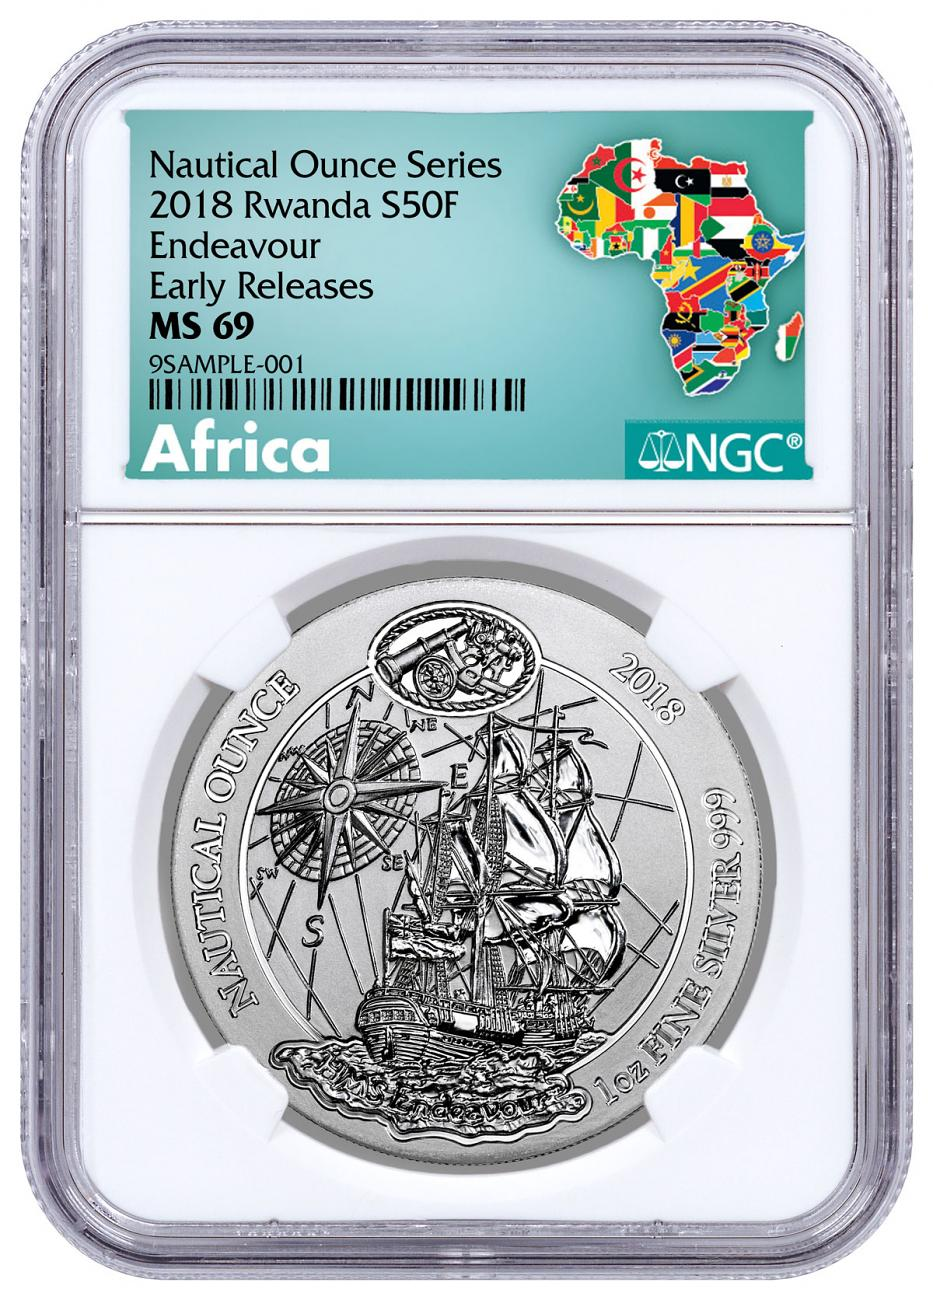 2018 Rwanda Nautical Ounces - HMS Endeavour 1 oz Silver RWF Franc50 Coin NGC MS69 ER Exclusive Africa Label